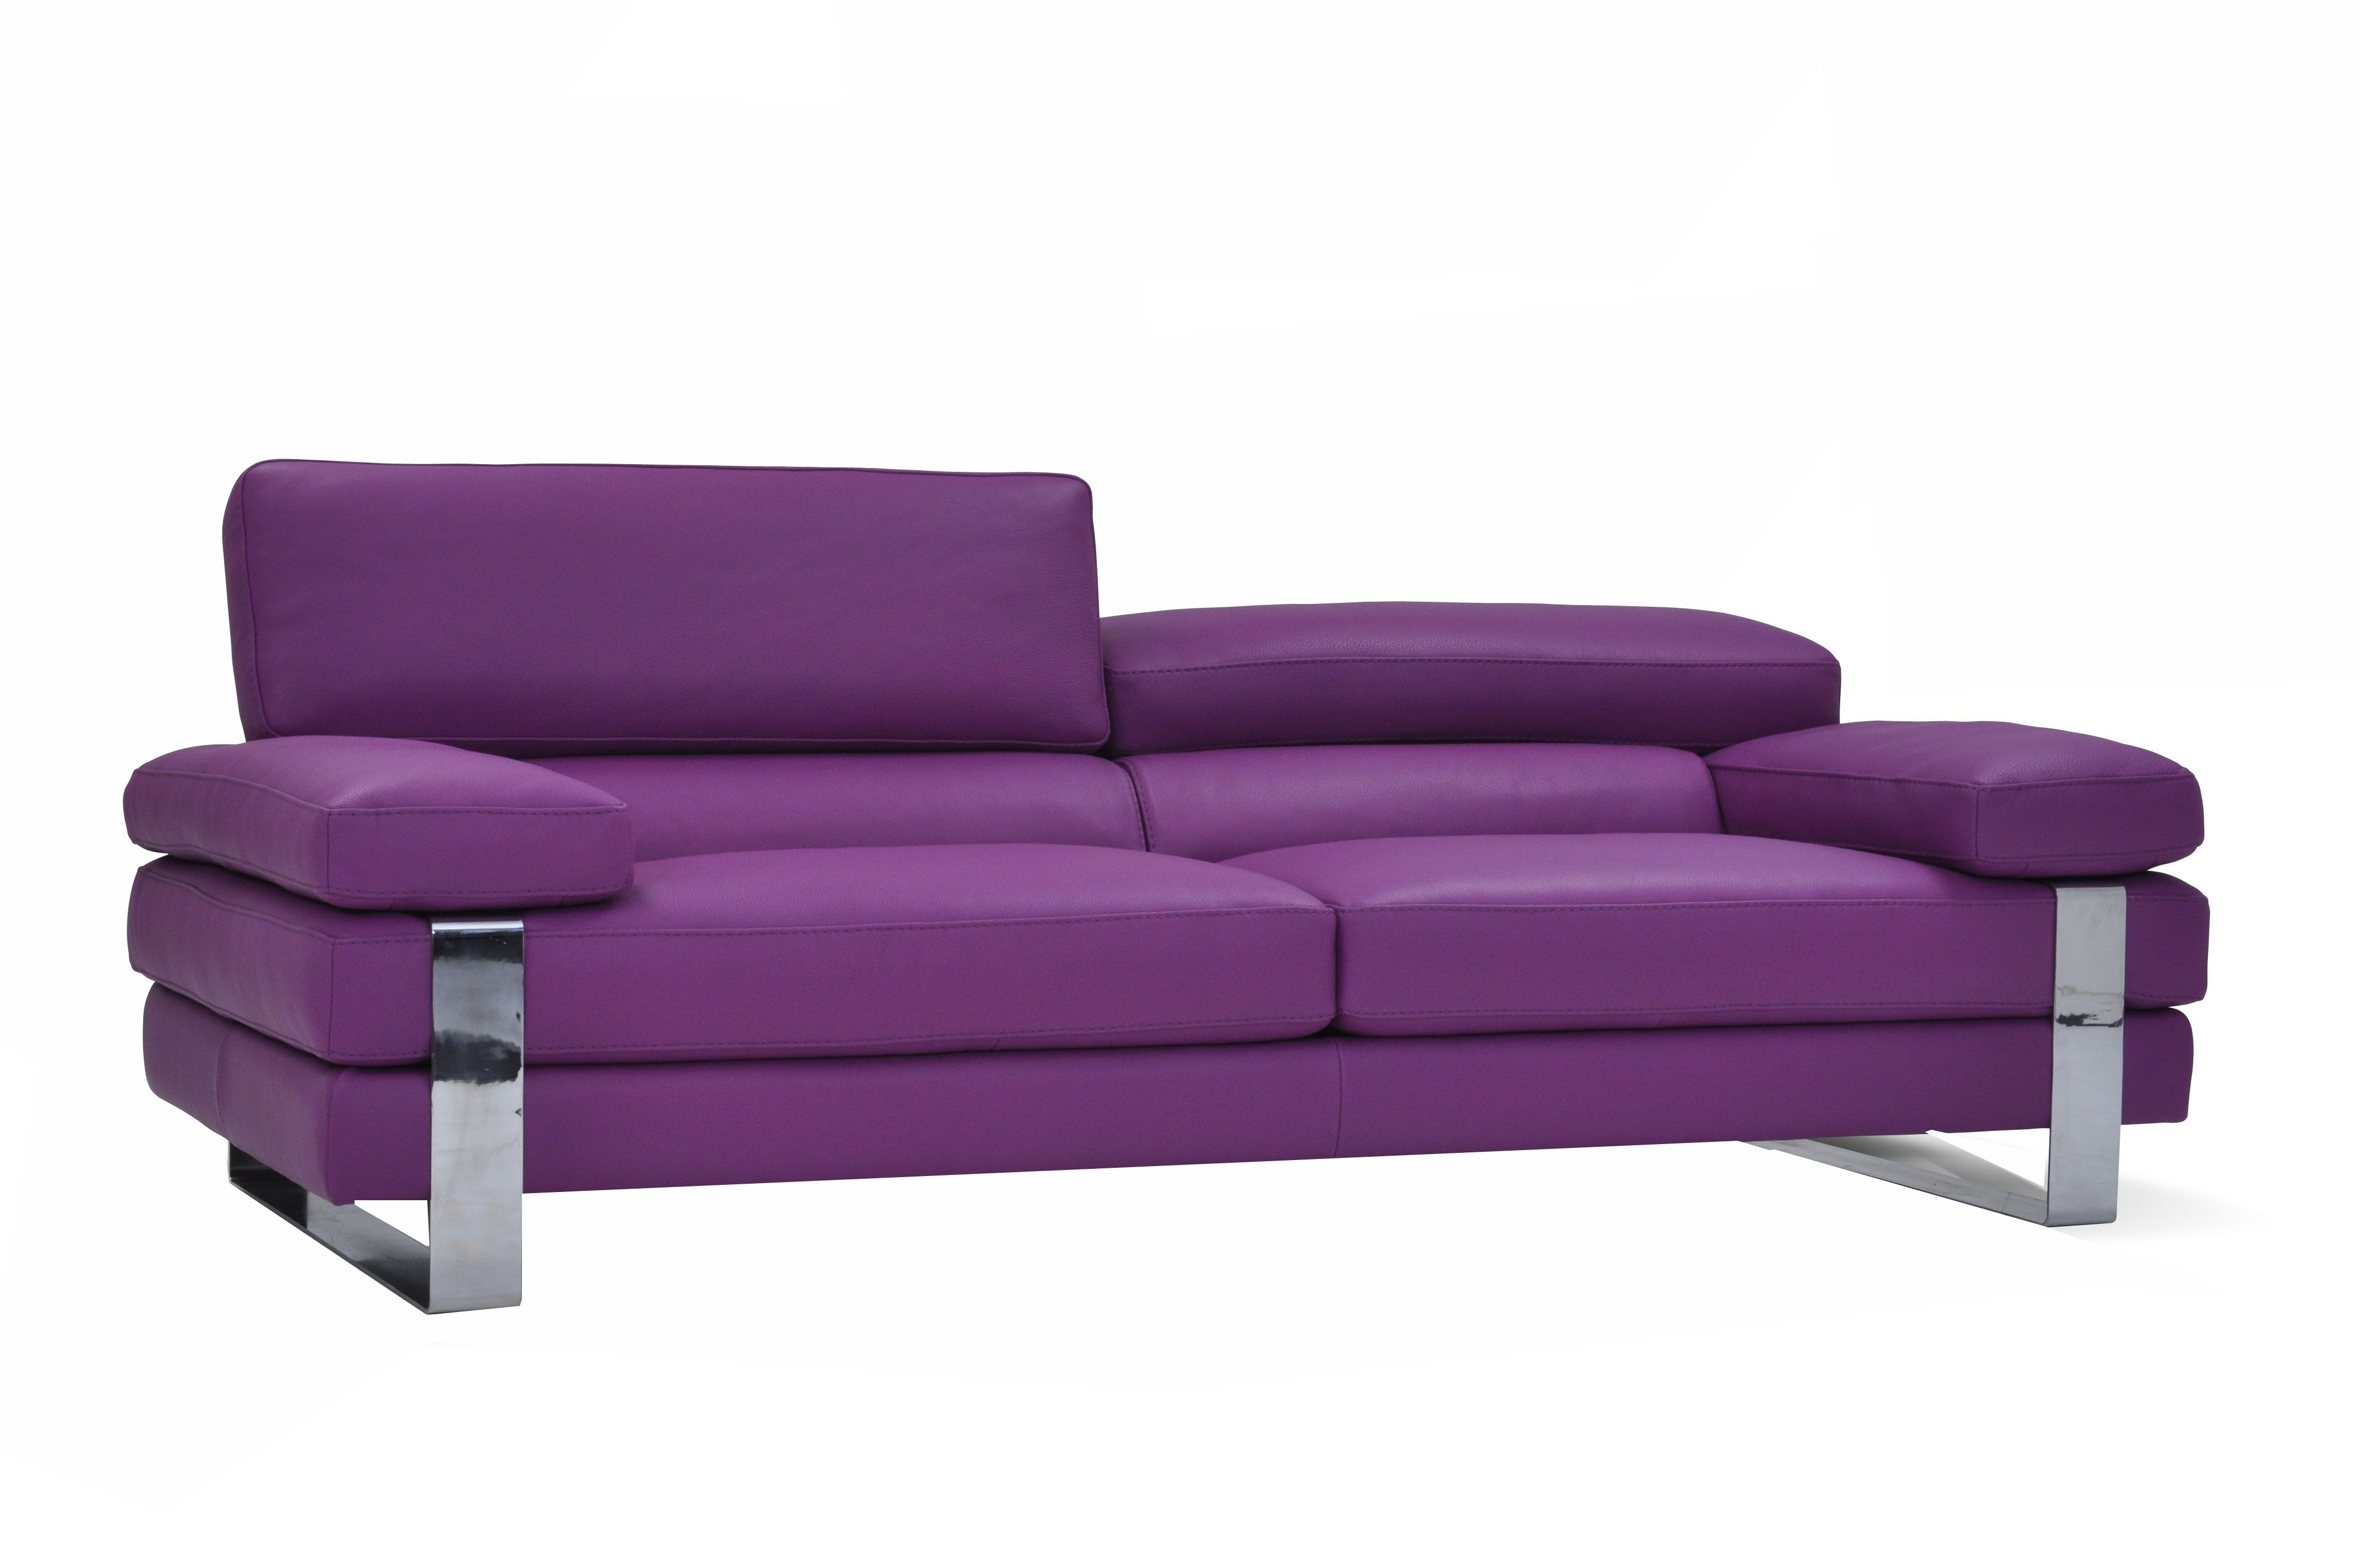 purple sofas blue throws for leather sofa made in italy furniture toronto